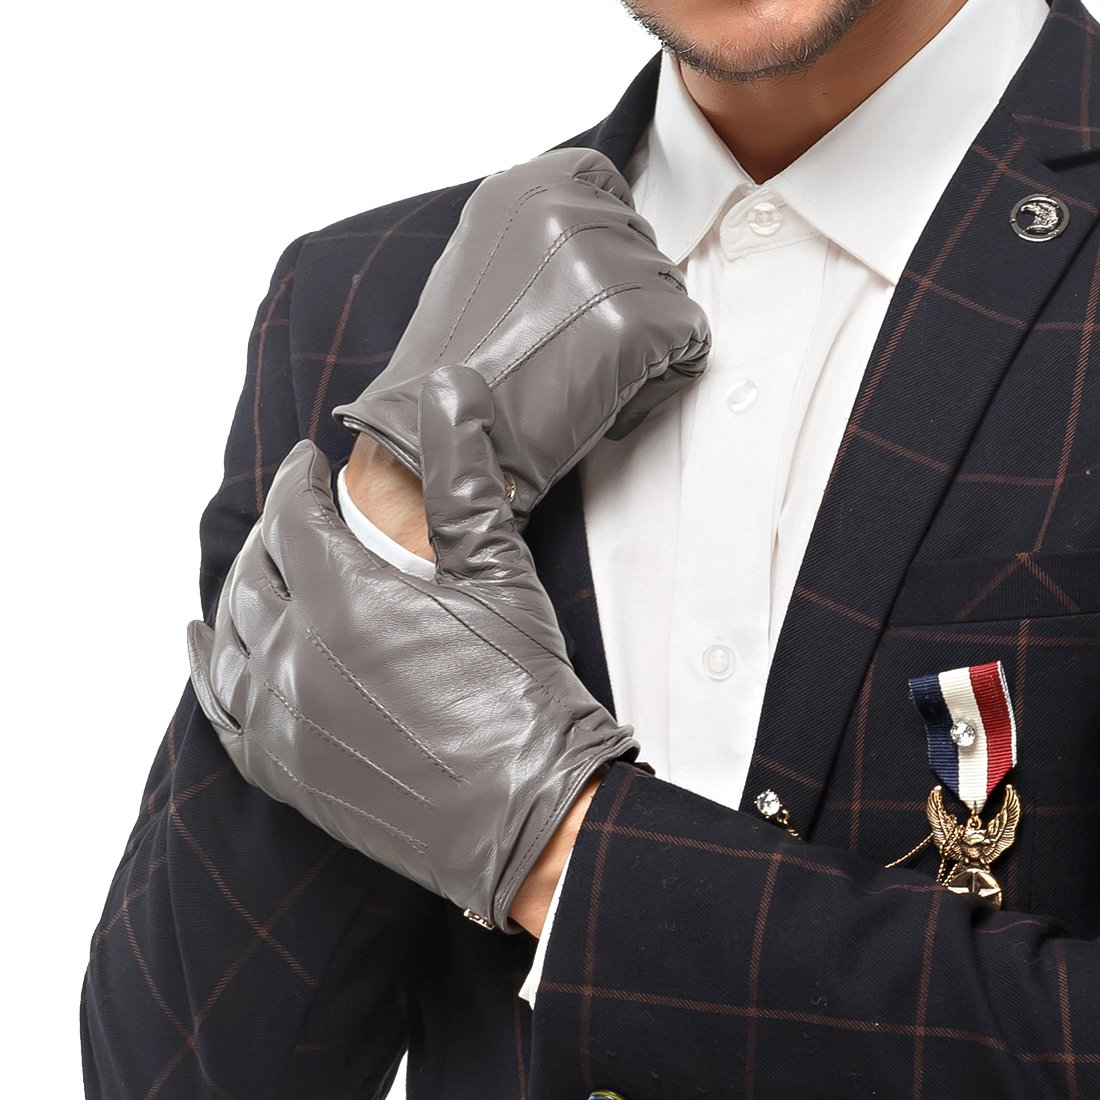 Nappaglo Men's Classic Lambskin Leather Gloves Touchscreen Winter Warm Driving Mittens with Long Fleece Lining (L (Palm Girth:8.5''-9''), Grey (Non-Touchscreen))